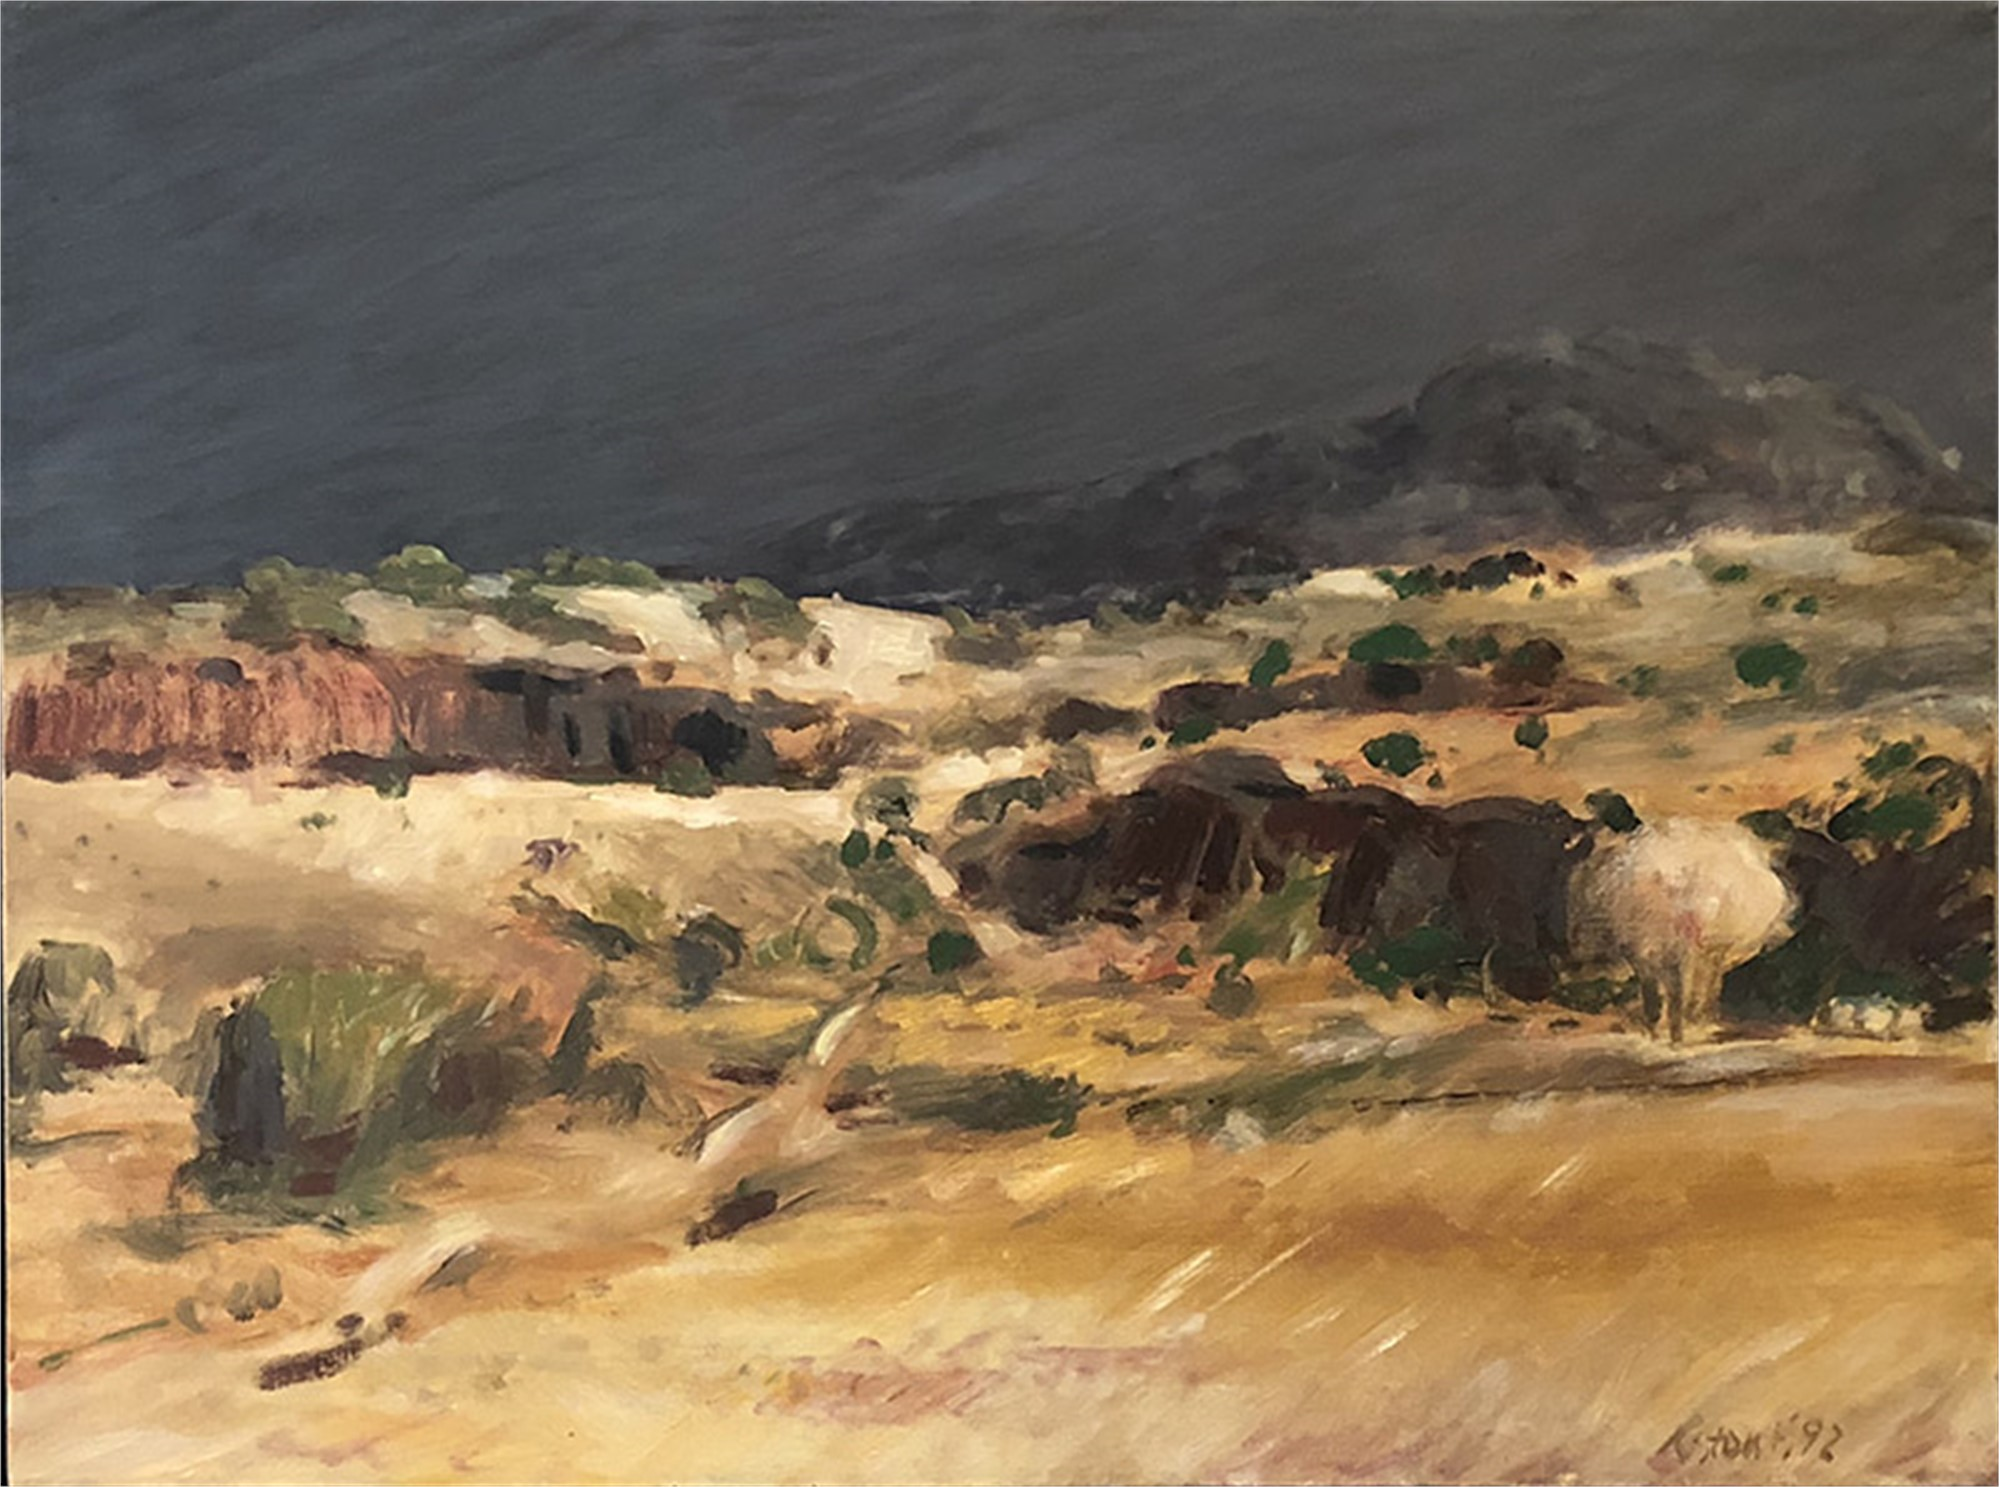 Untitled, Big Bend by Richard Stout - Early Works